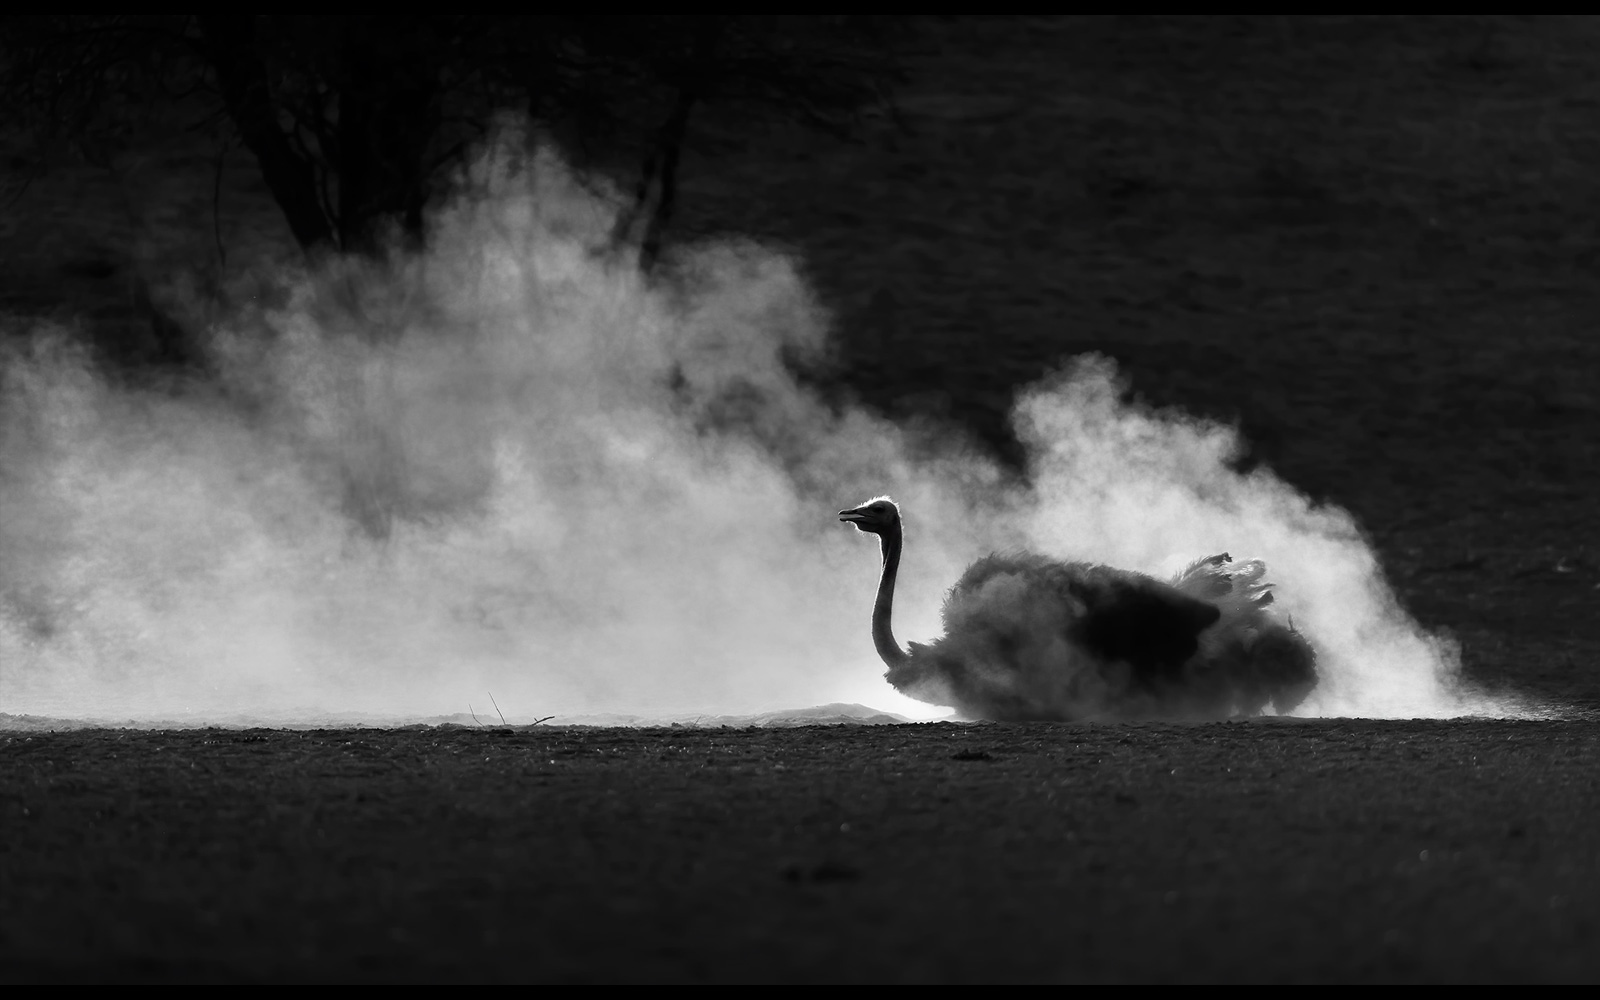 An ostrich in the dust near Leeudril waterhole, Kgalagadi Transfrontier Park, South Africa/Botswana © Willem Kruger